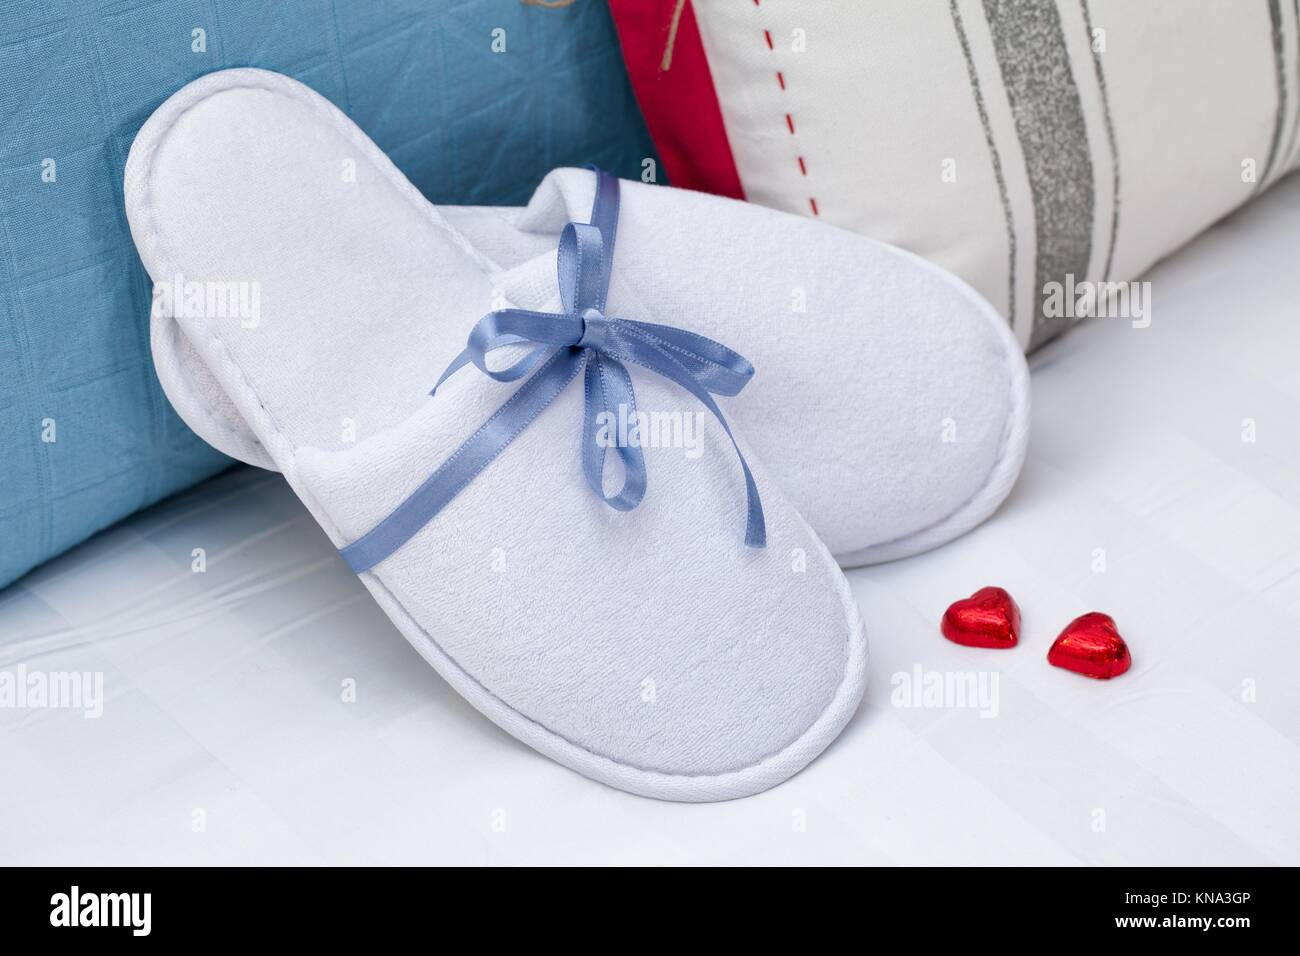 Baby Hotel Slippers White Hotel Home Spa Wellness Slippers With Two Heart